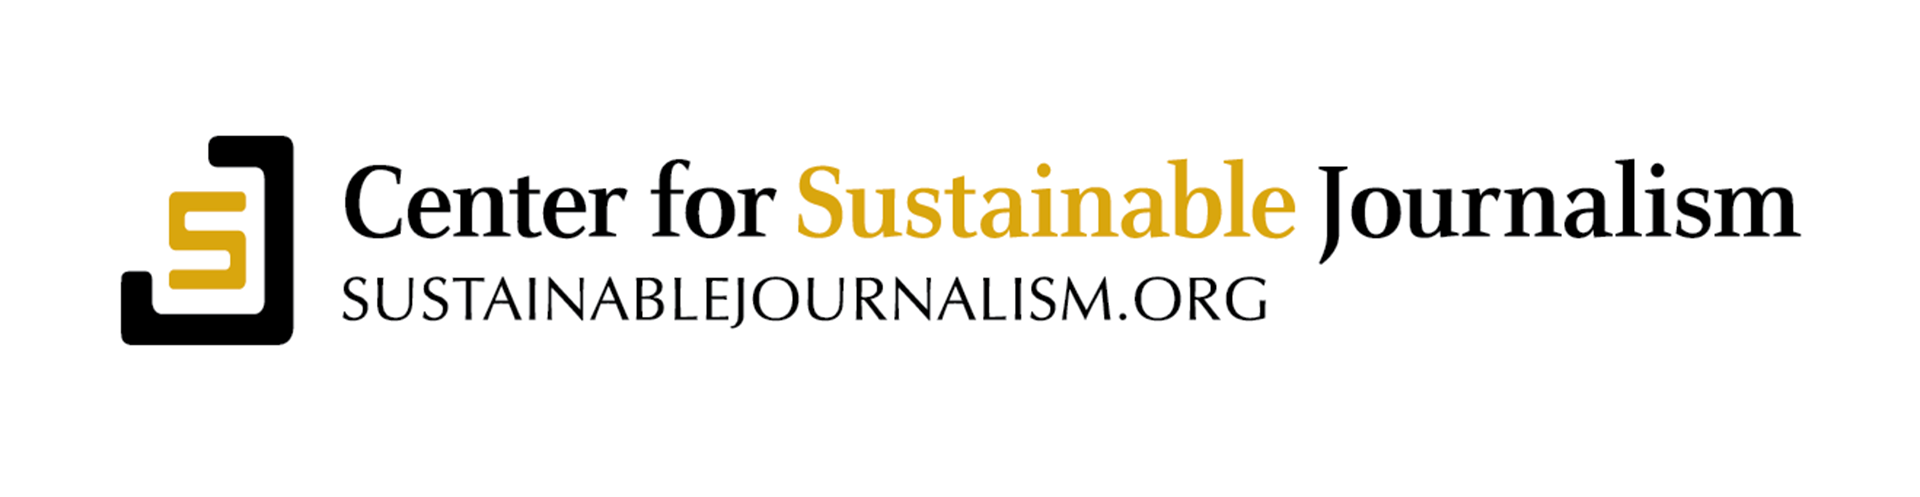 Center for Sustainable Journalism